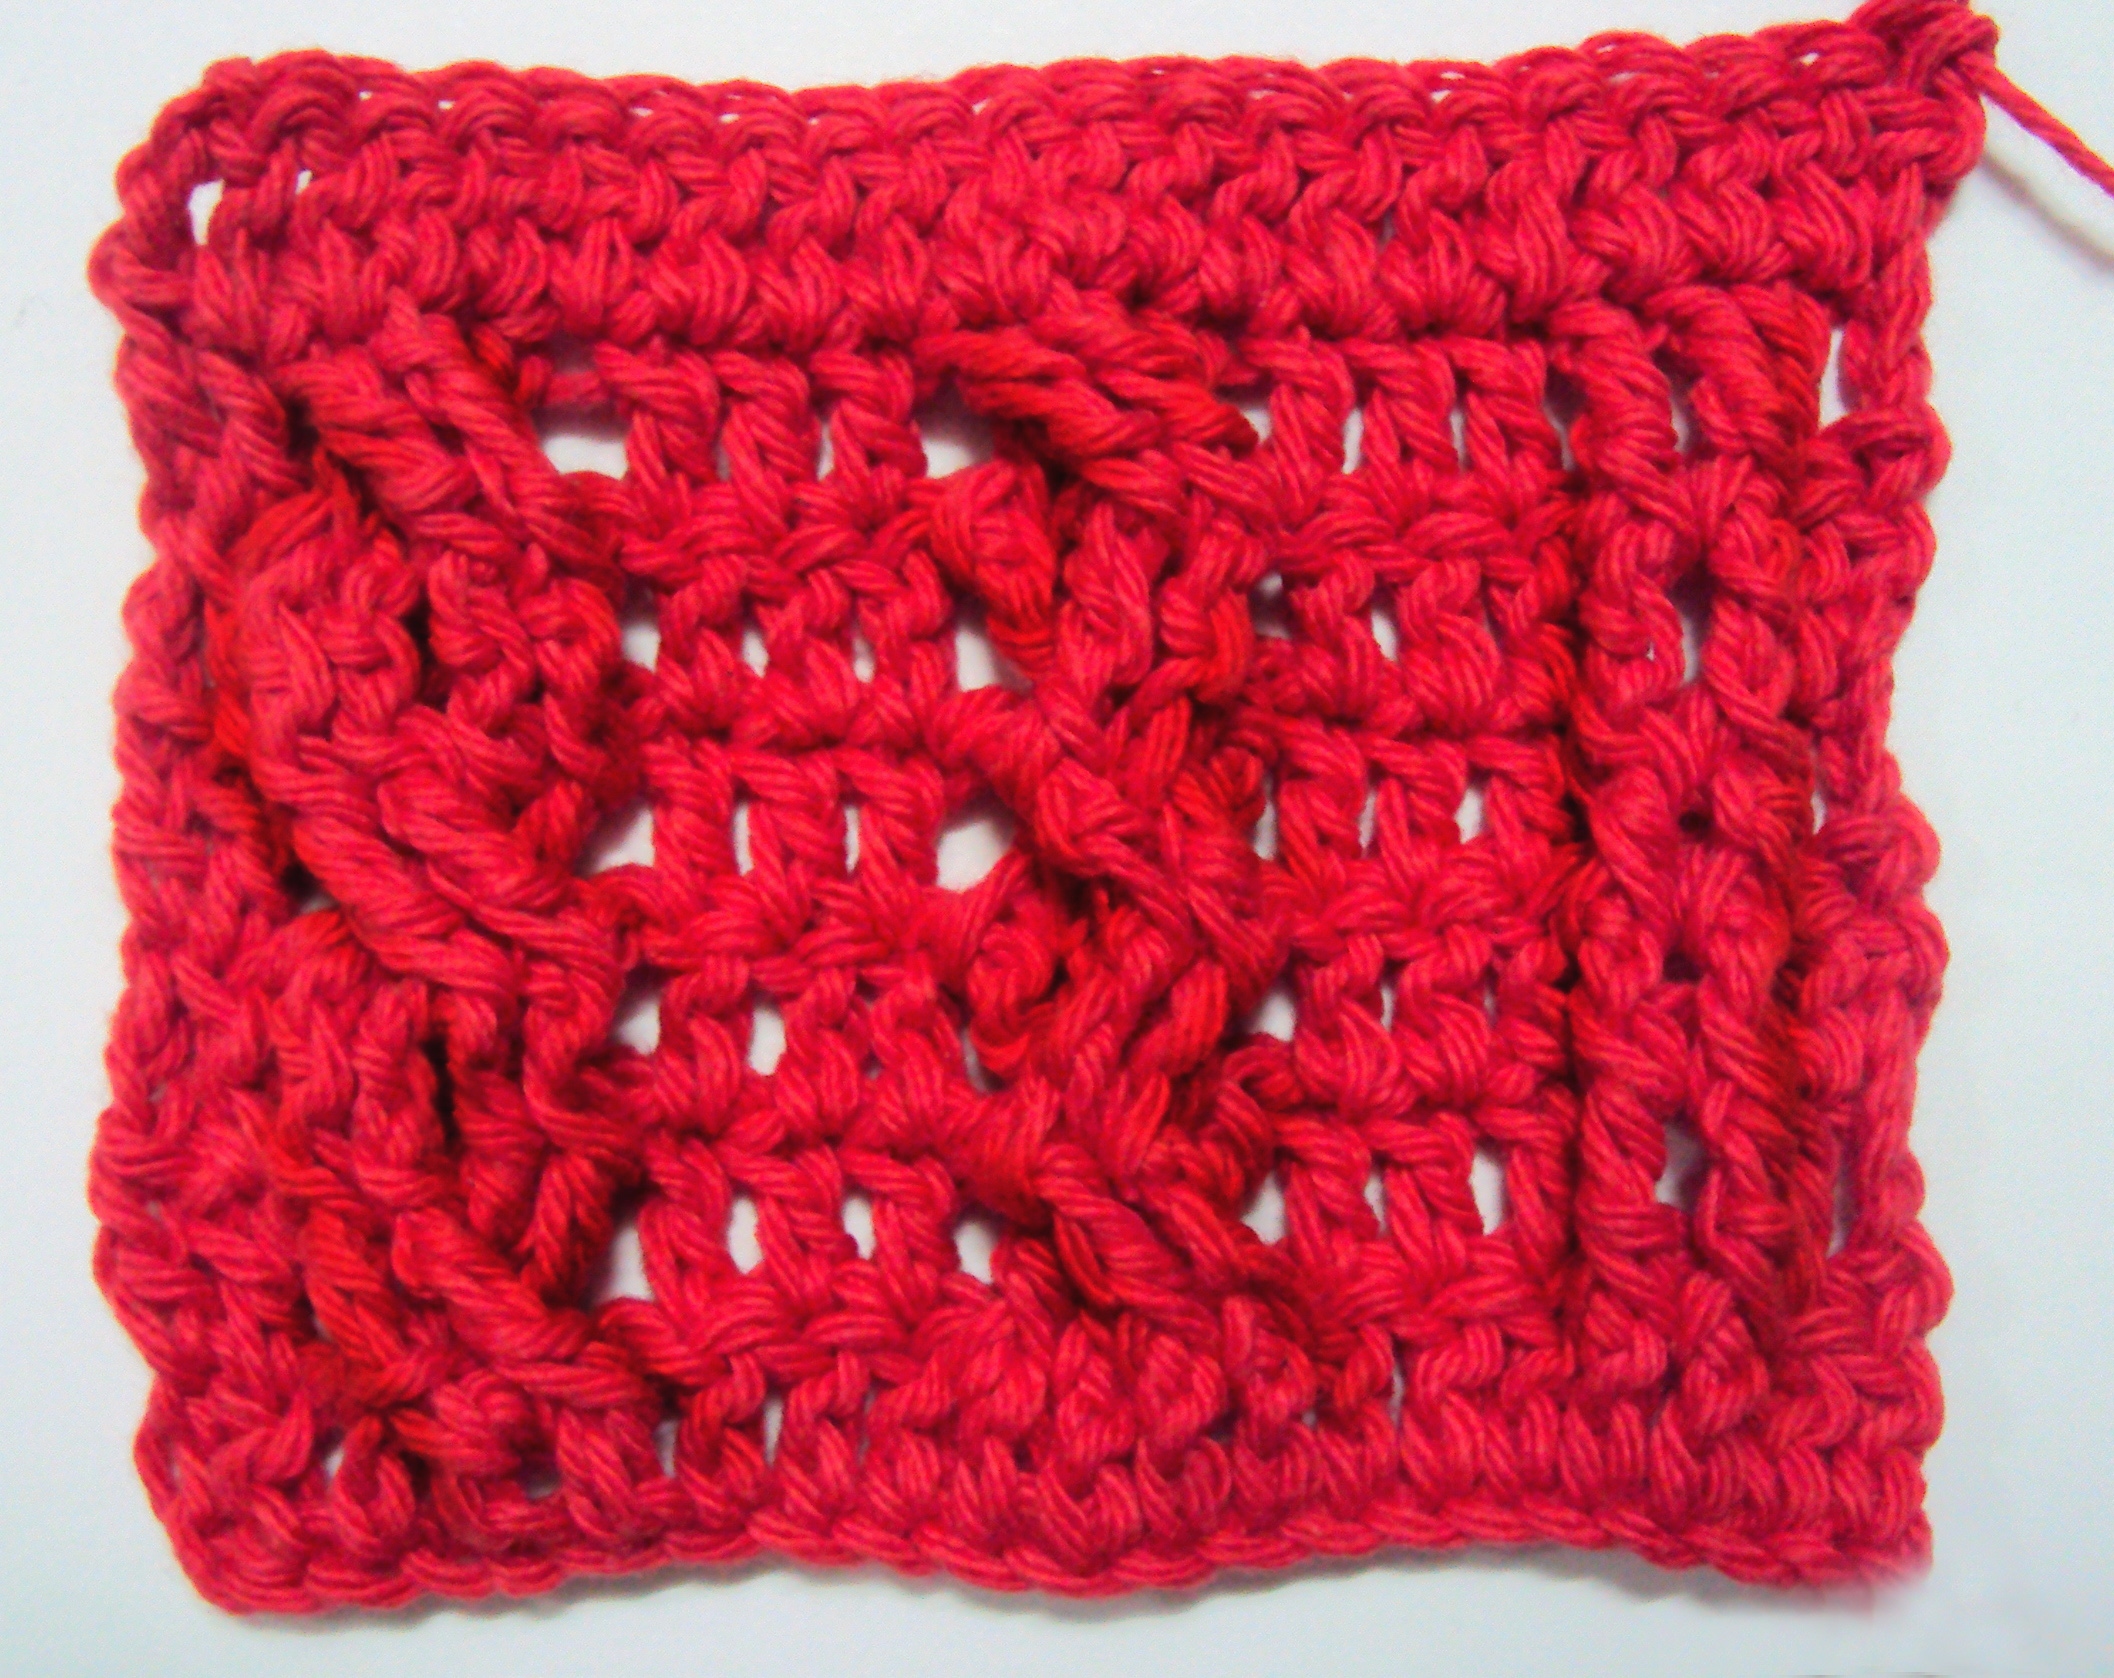 Crochet Crochet Crochet : ... How to Crochet: Cable Stitches - Crochet Patterns, Tutorials and News